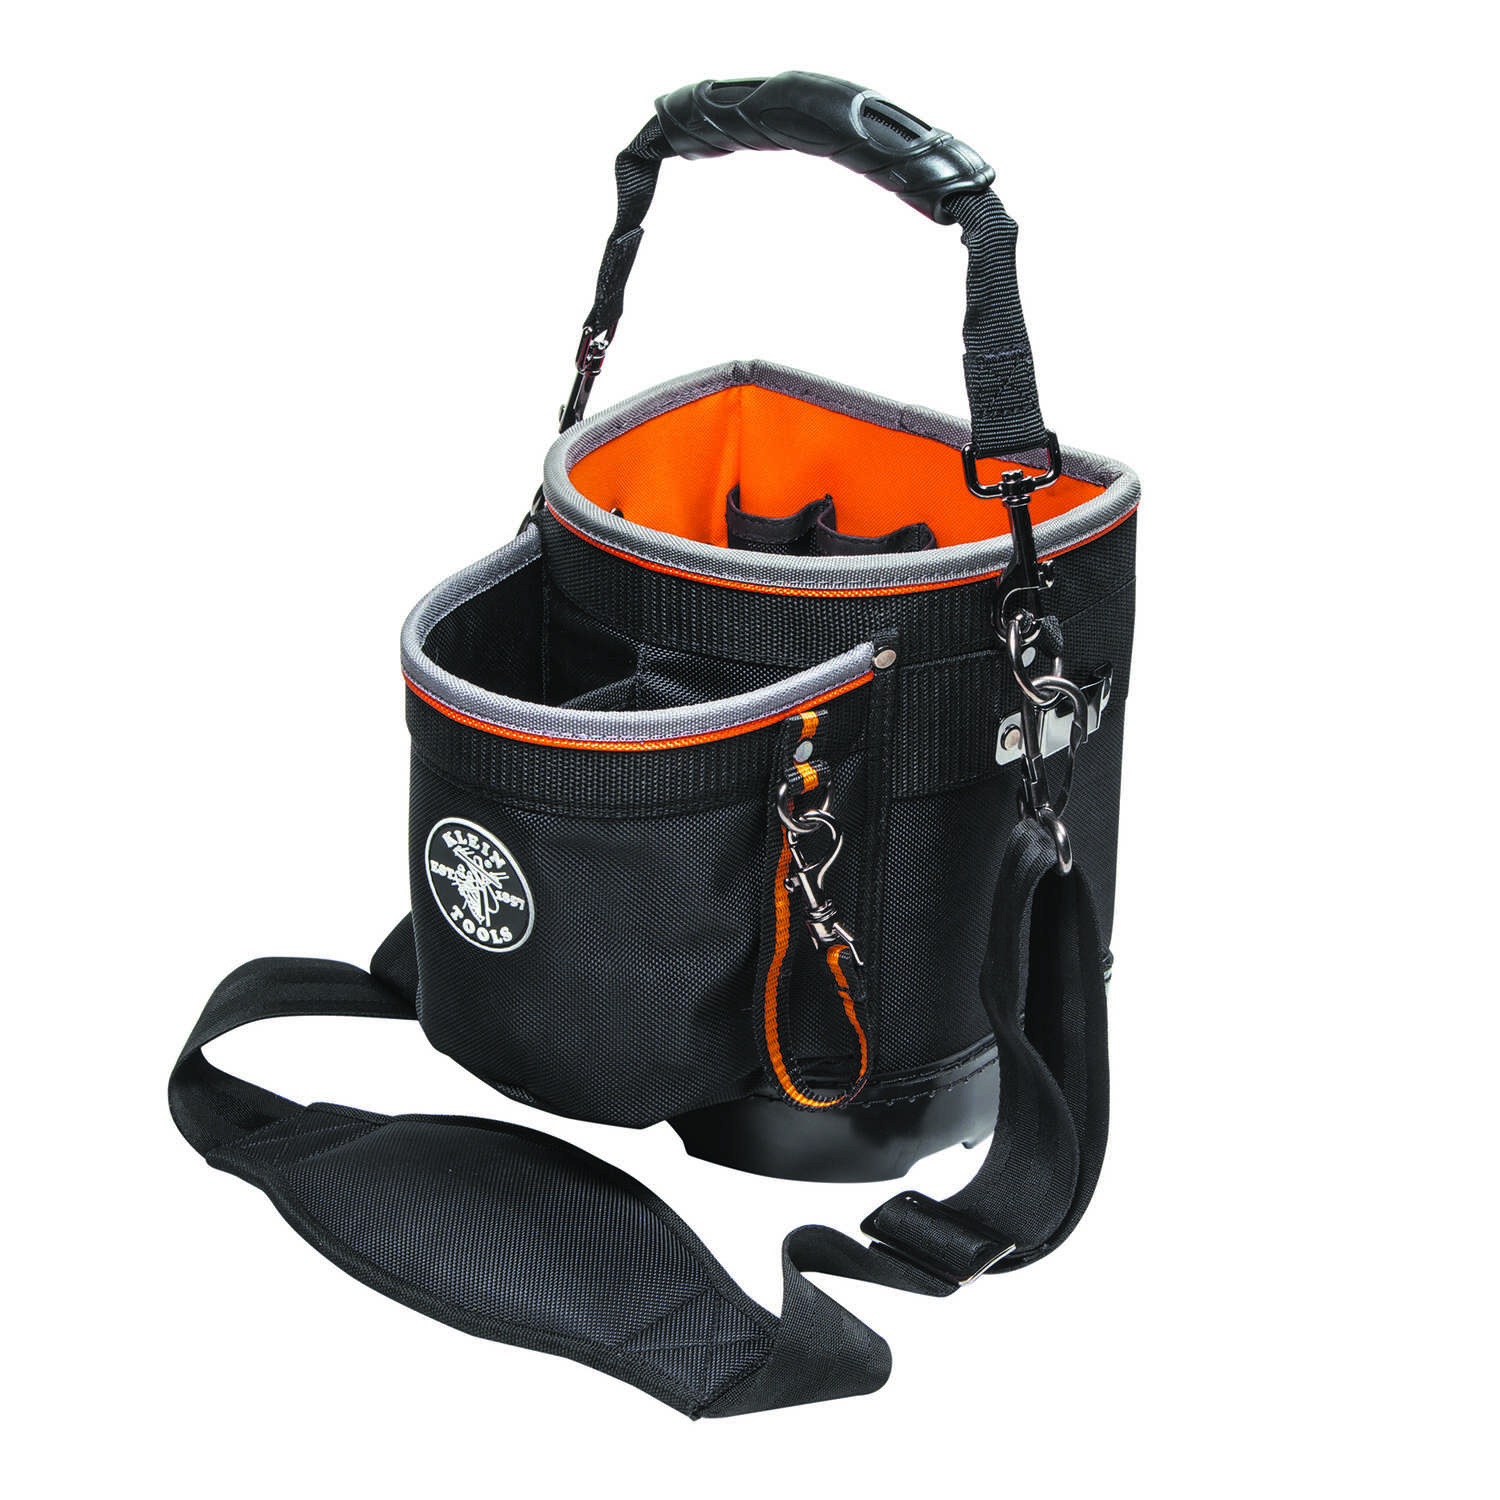 Klein Tools  Tradesman Pro  5 in. W x 10 in. H Ballistic Nylon  Tool Pouch  14 pocket Black/Orange